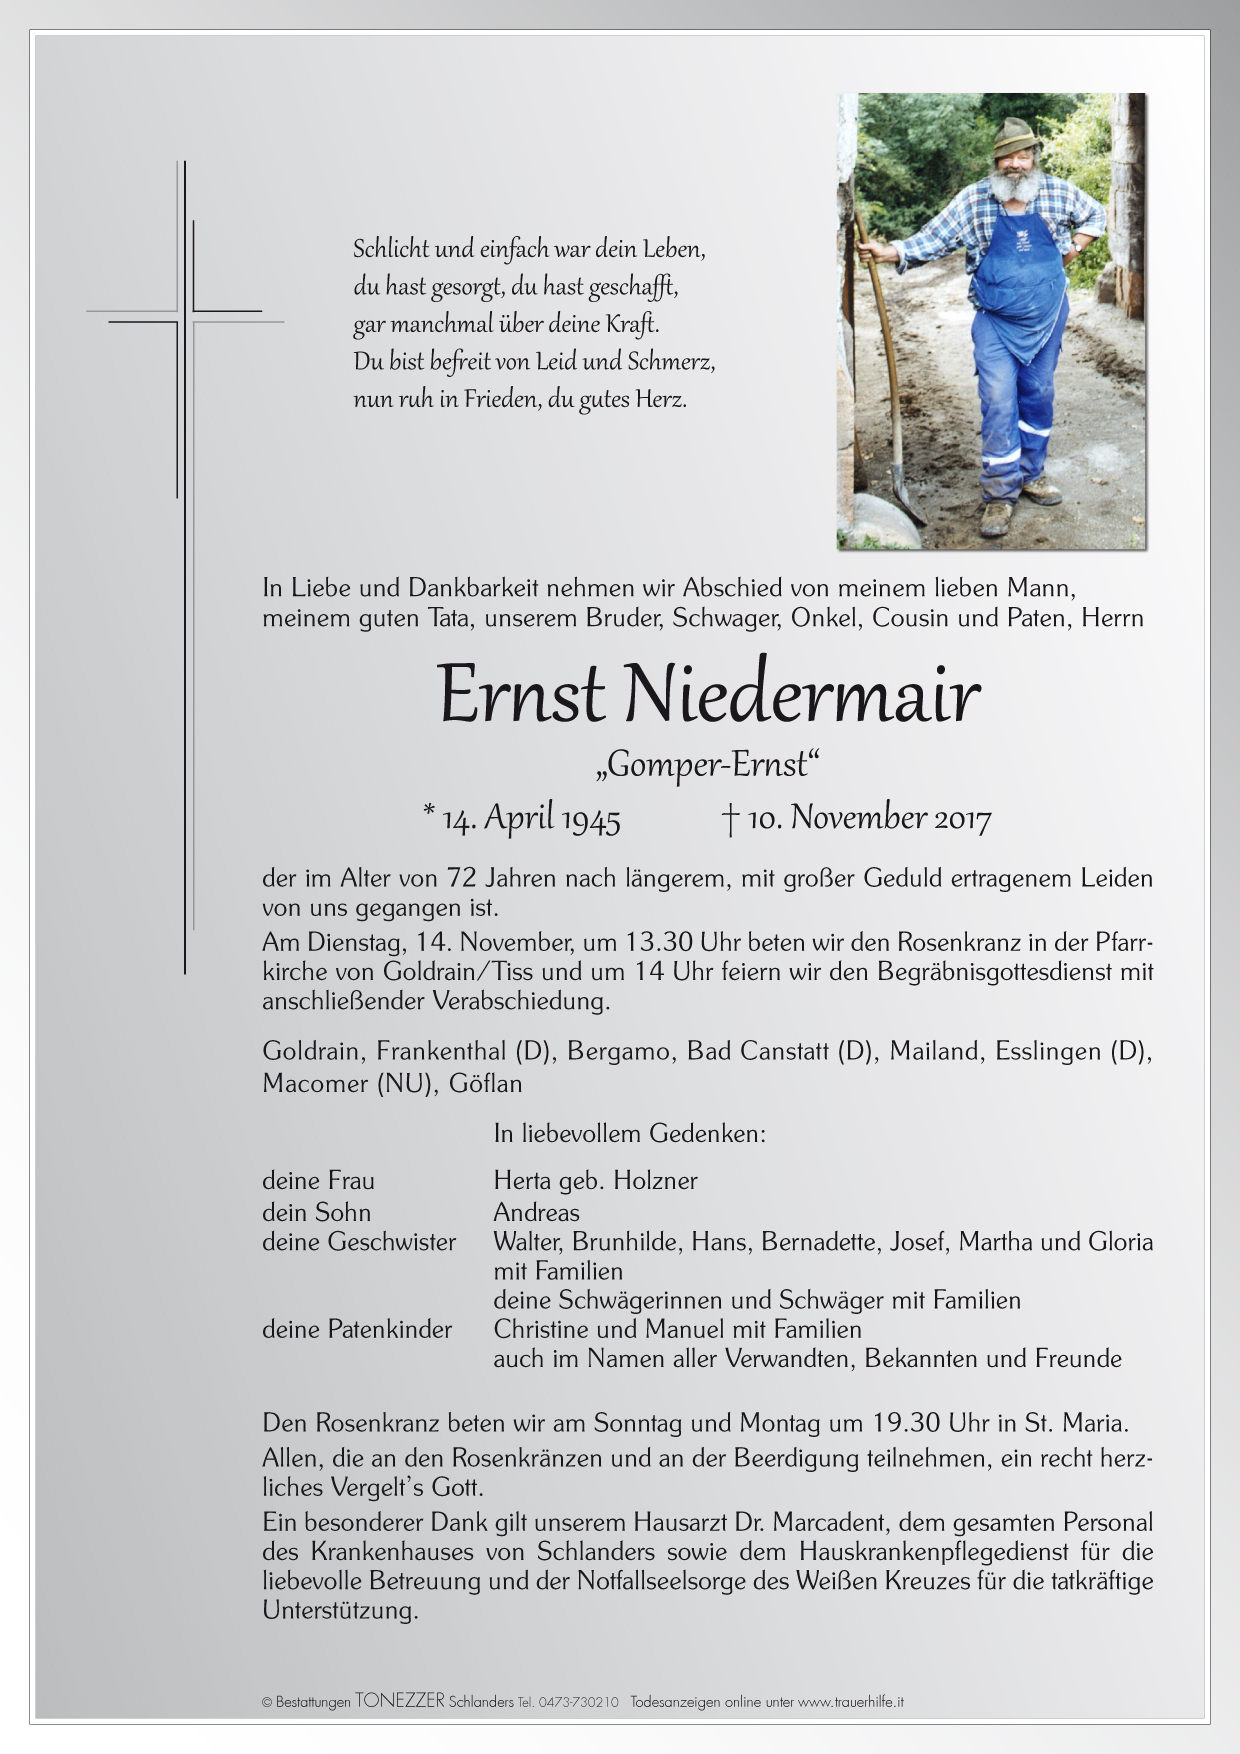 Ernst Niedermair